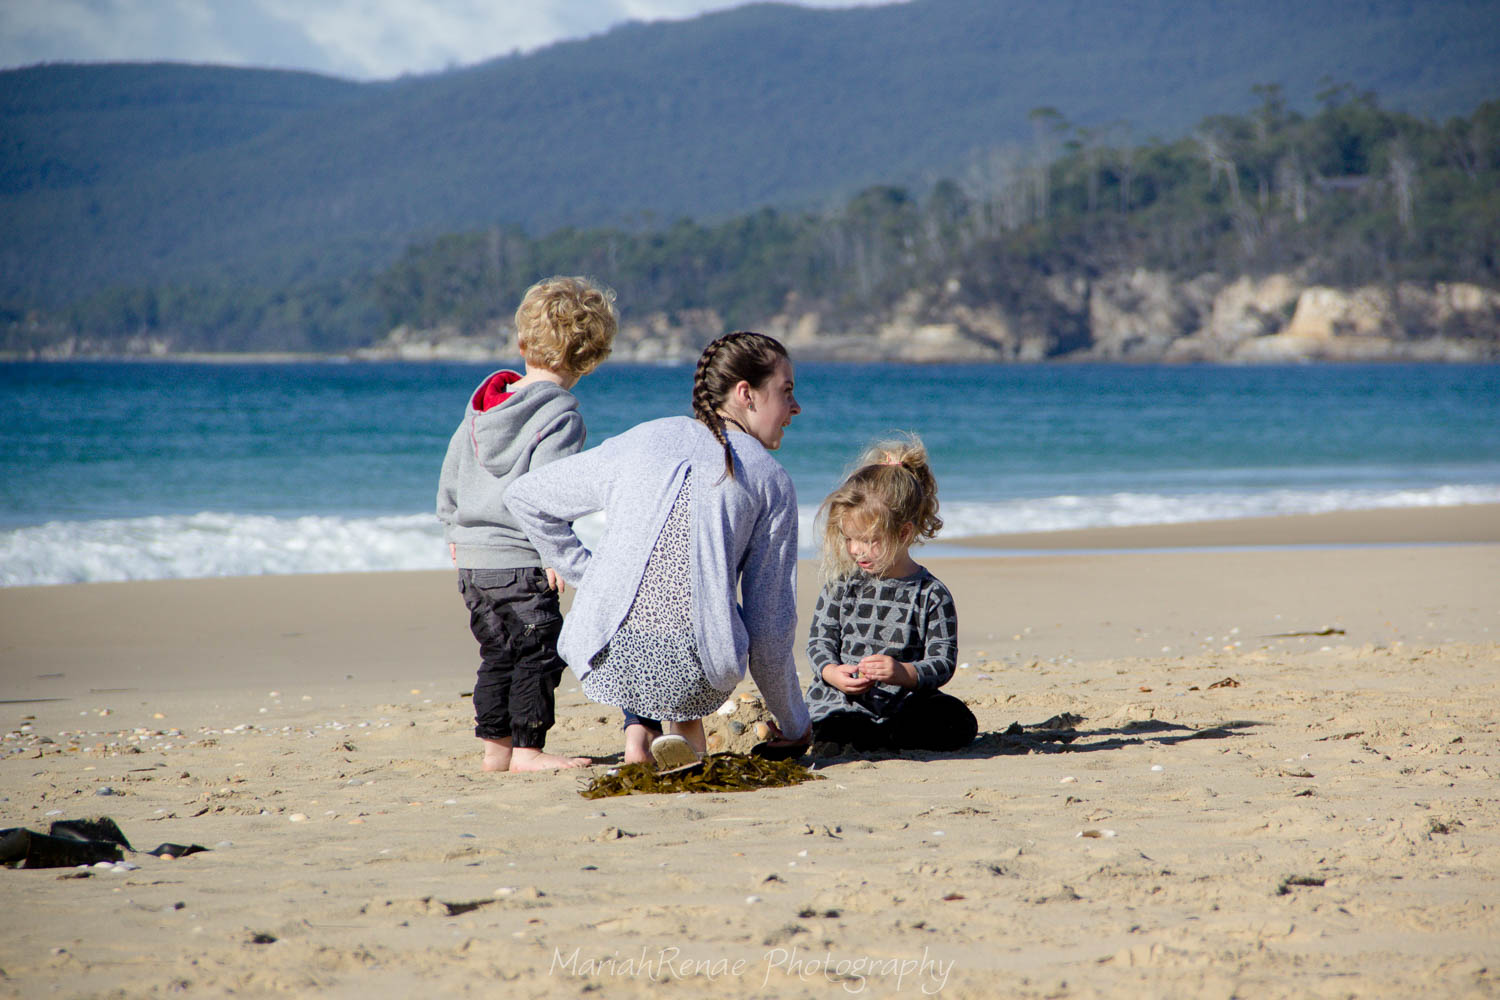 This was a family with two young kids enjoying one of the beaches we visited on the island. The kids were so cute playing in the sand and chasing each other about.